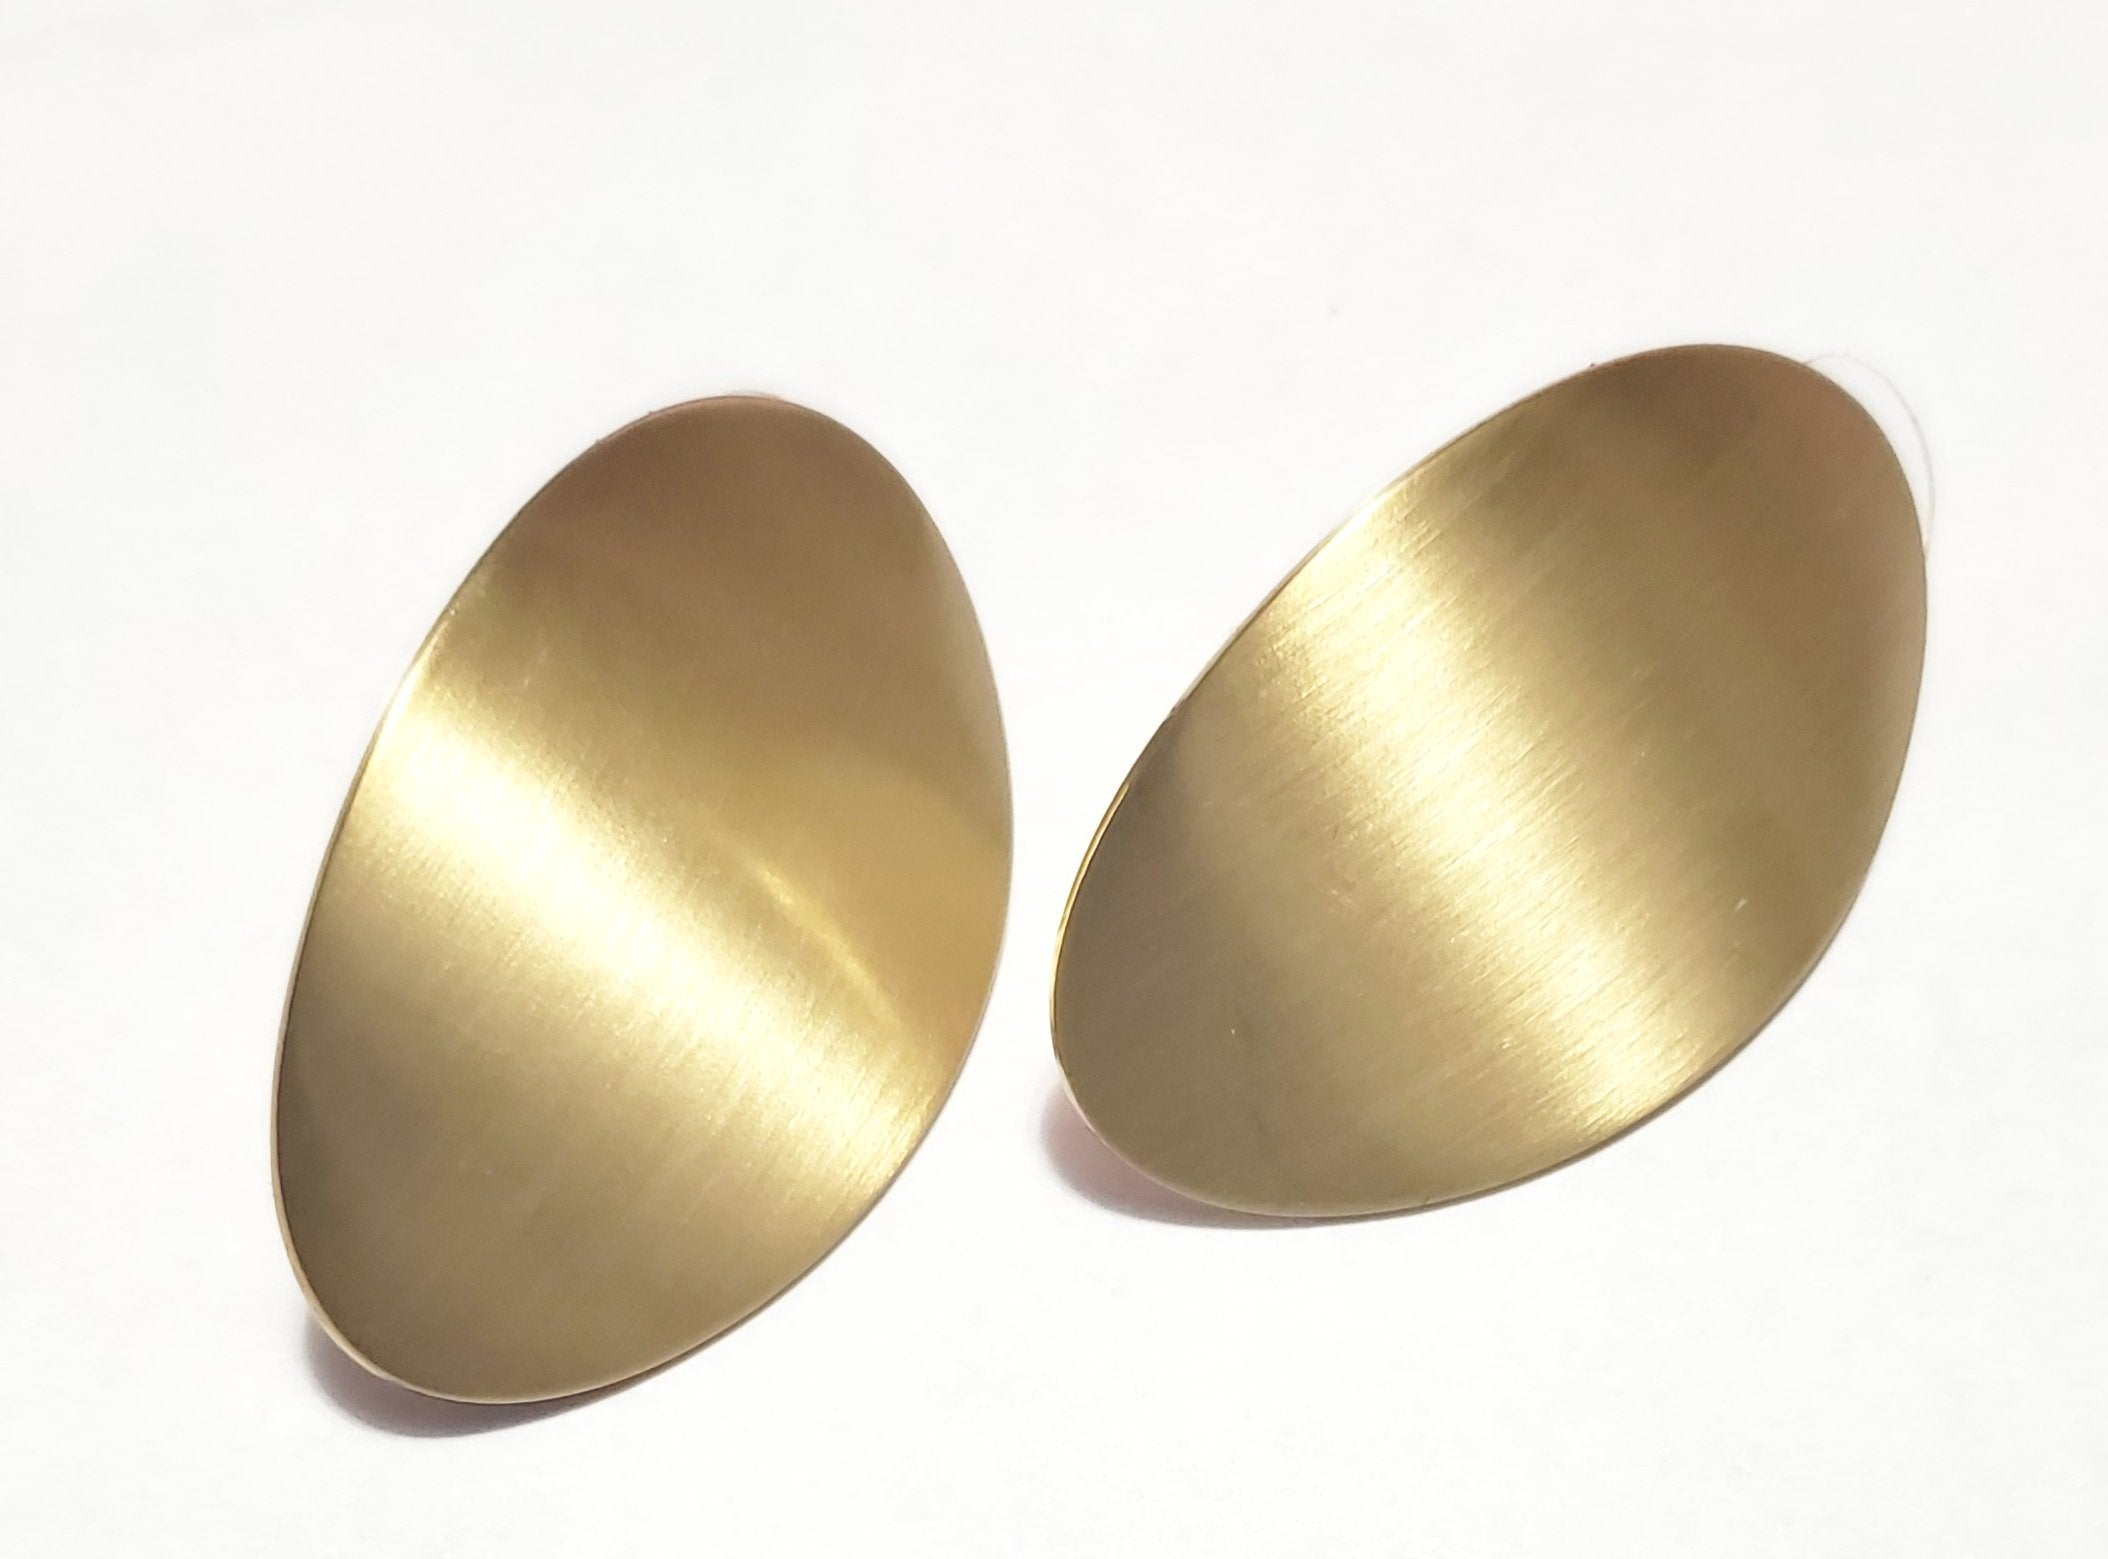 OVAL SMOOTH GOLD JEWELRY